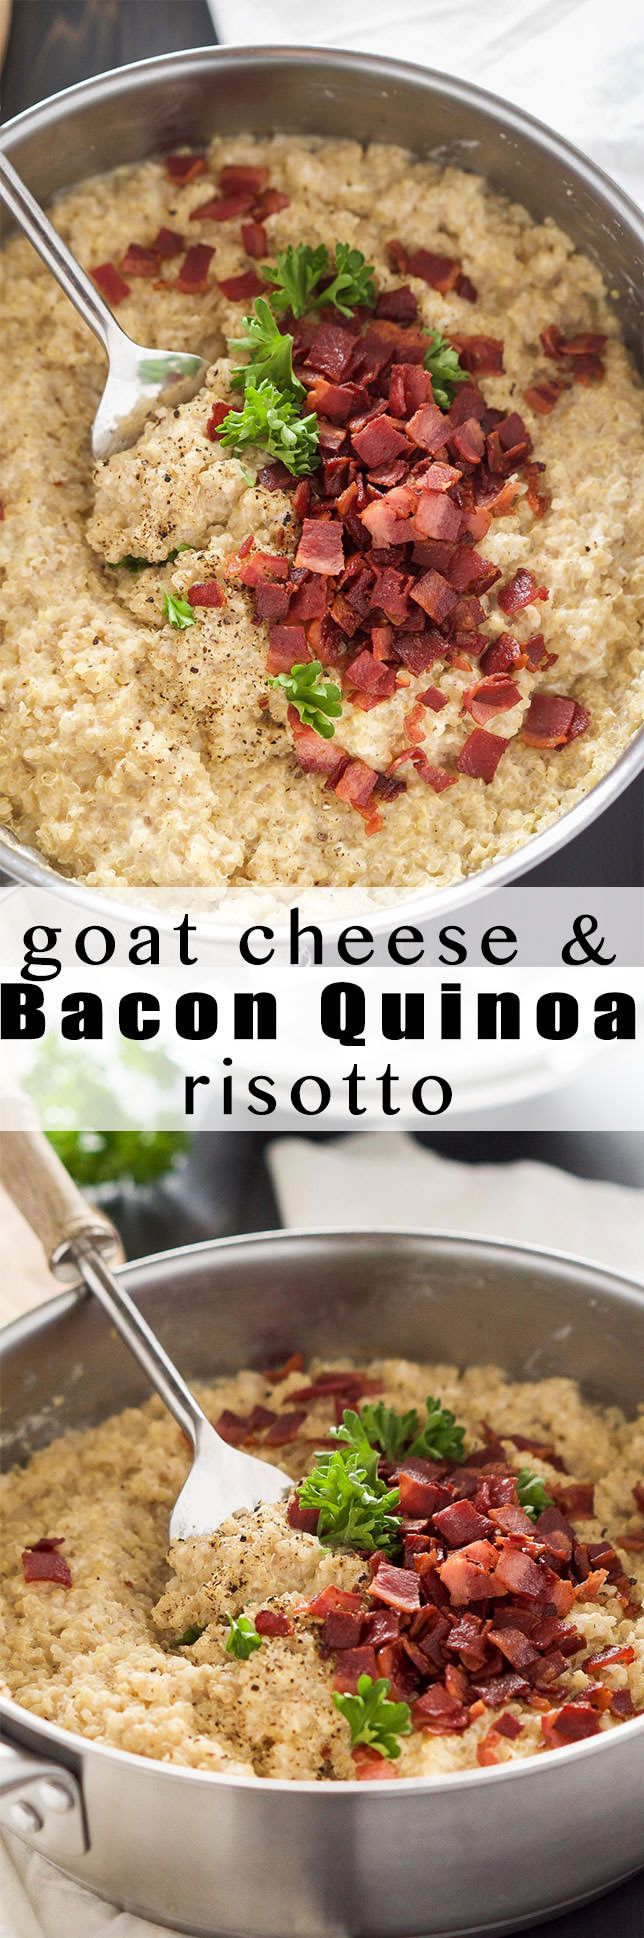 Goat Cheese & Bacon Quinoa Risotto